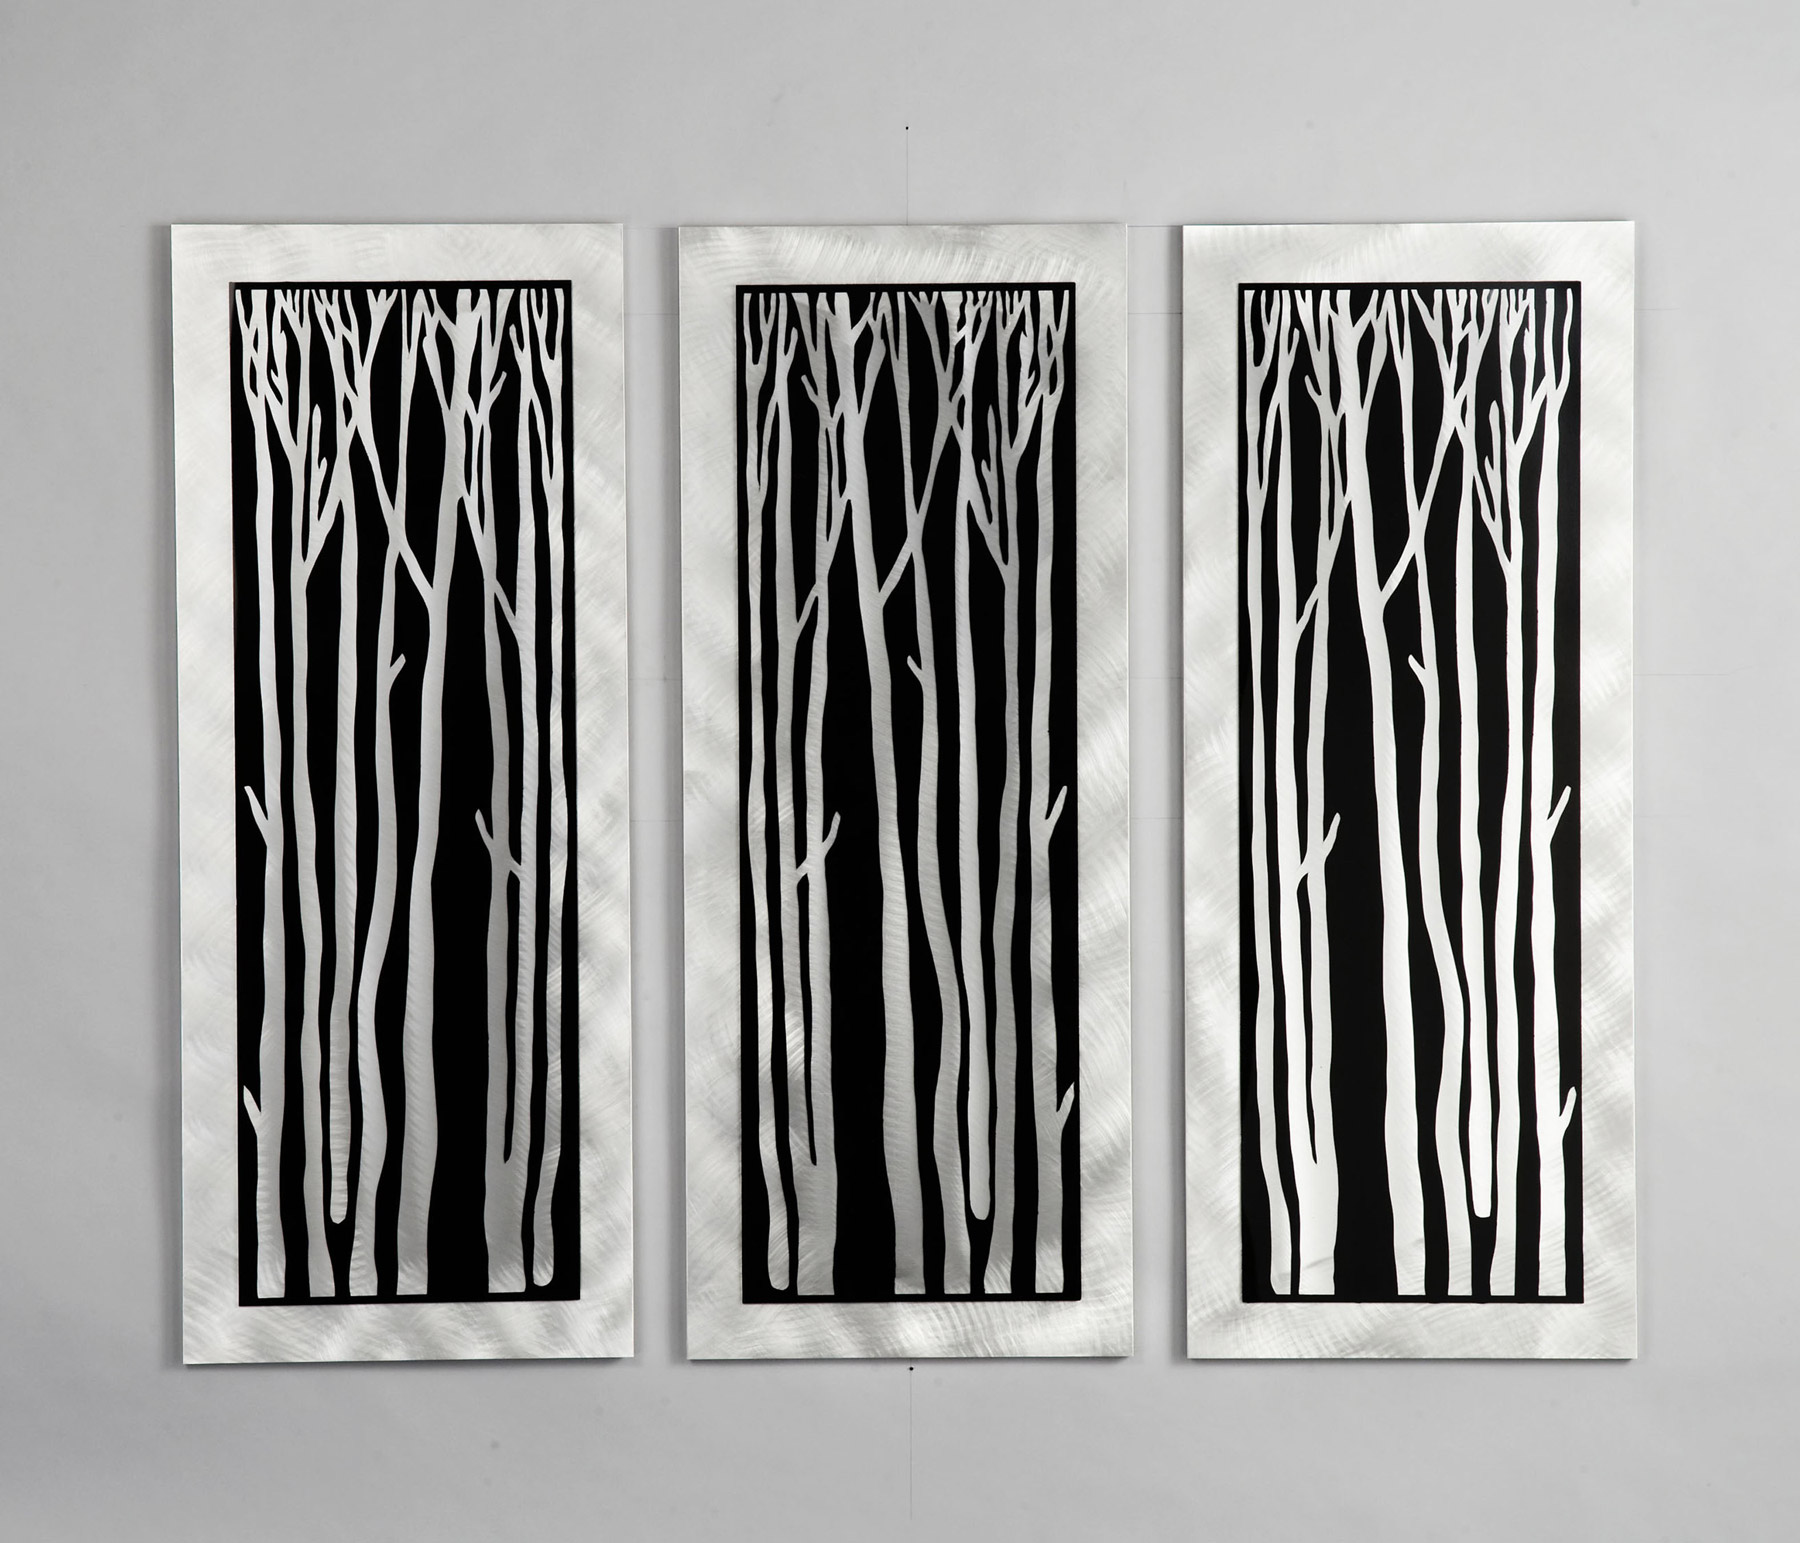 Lighting wg40502 silver birch 3 piece wall graphic nova lighting wg40502 silver birch 3 piece wall graphic aloadofball Images